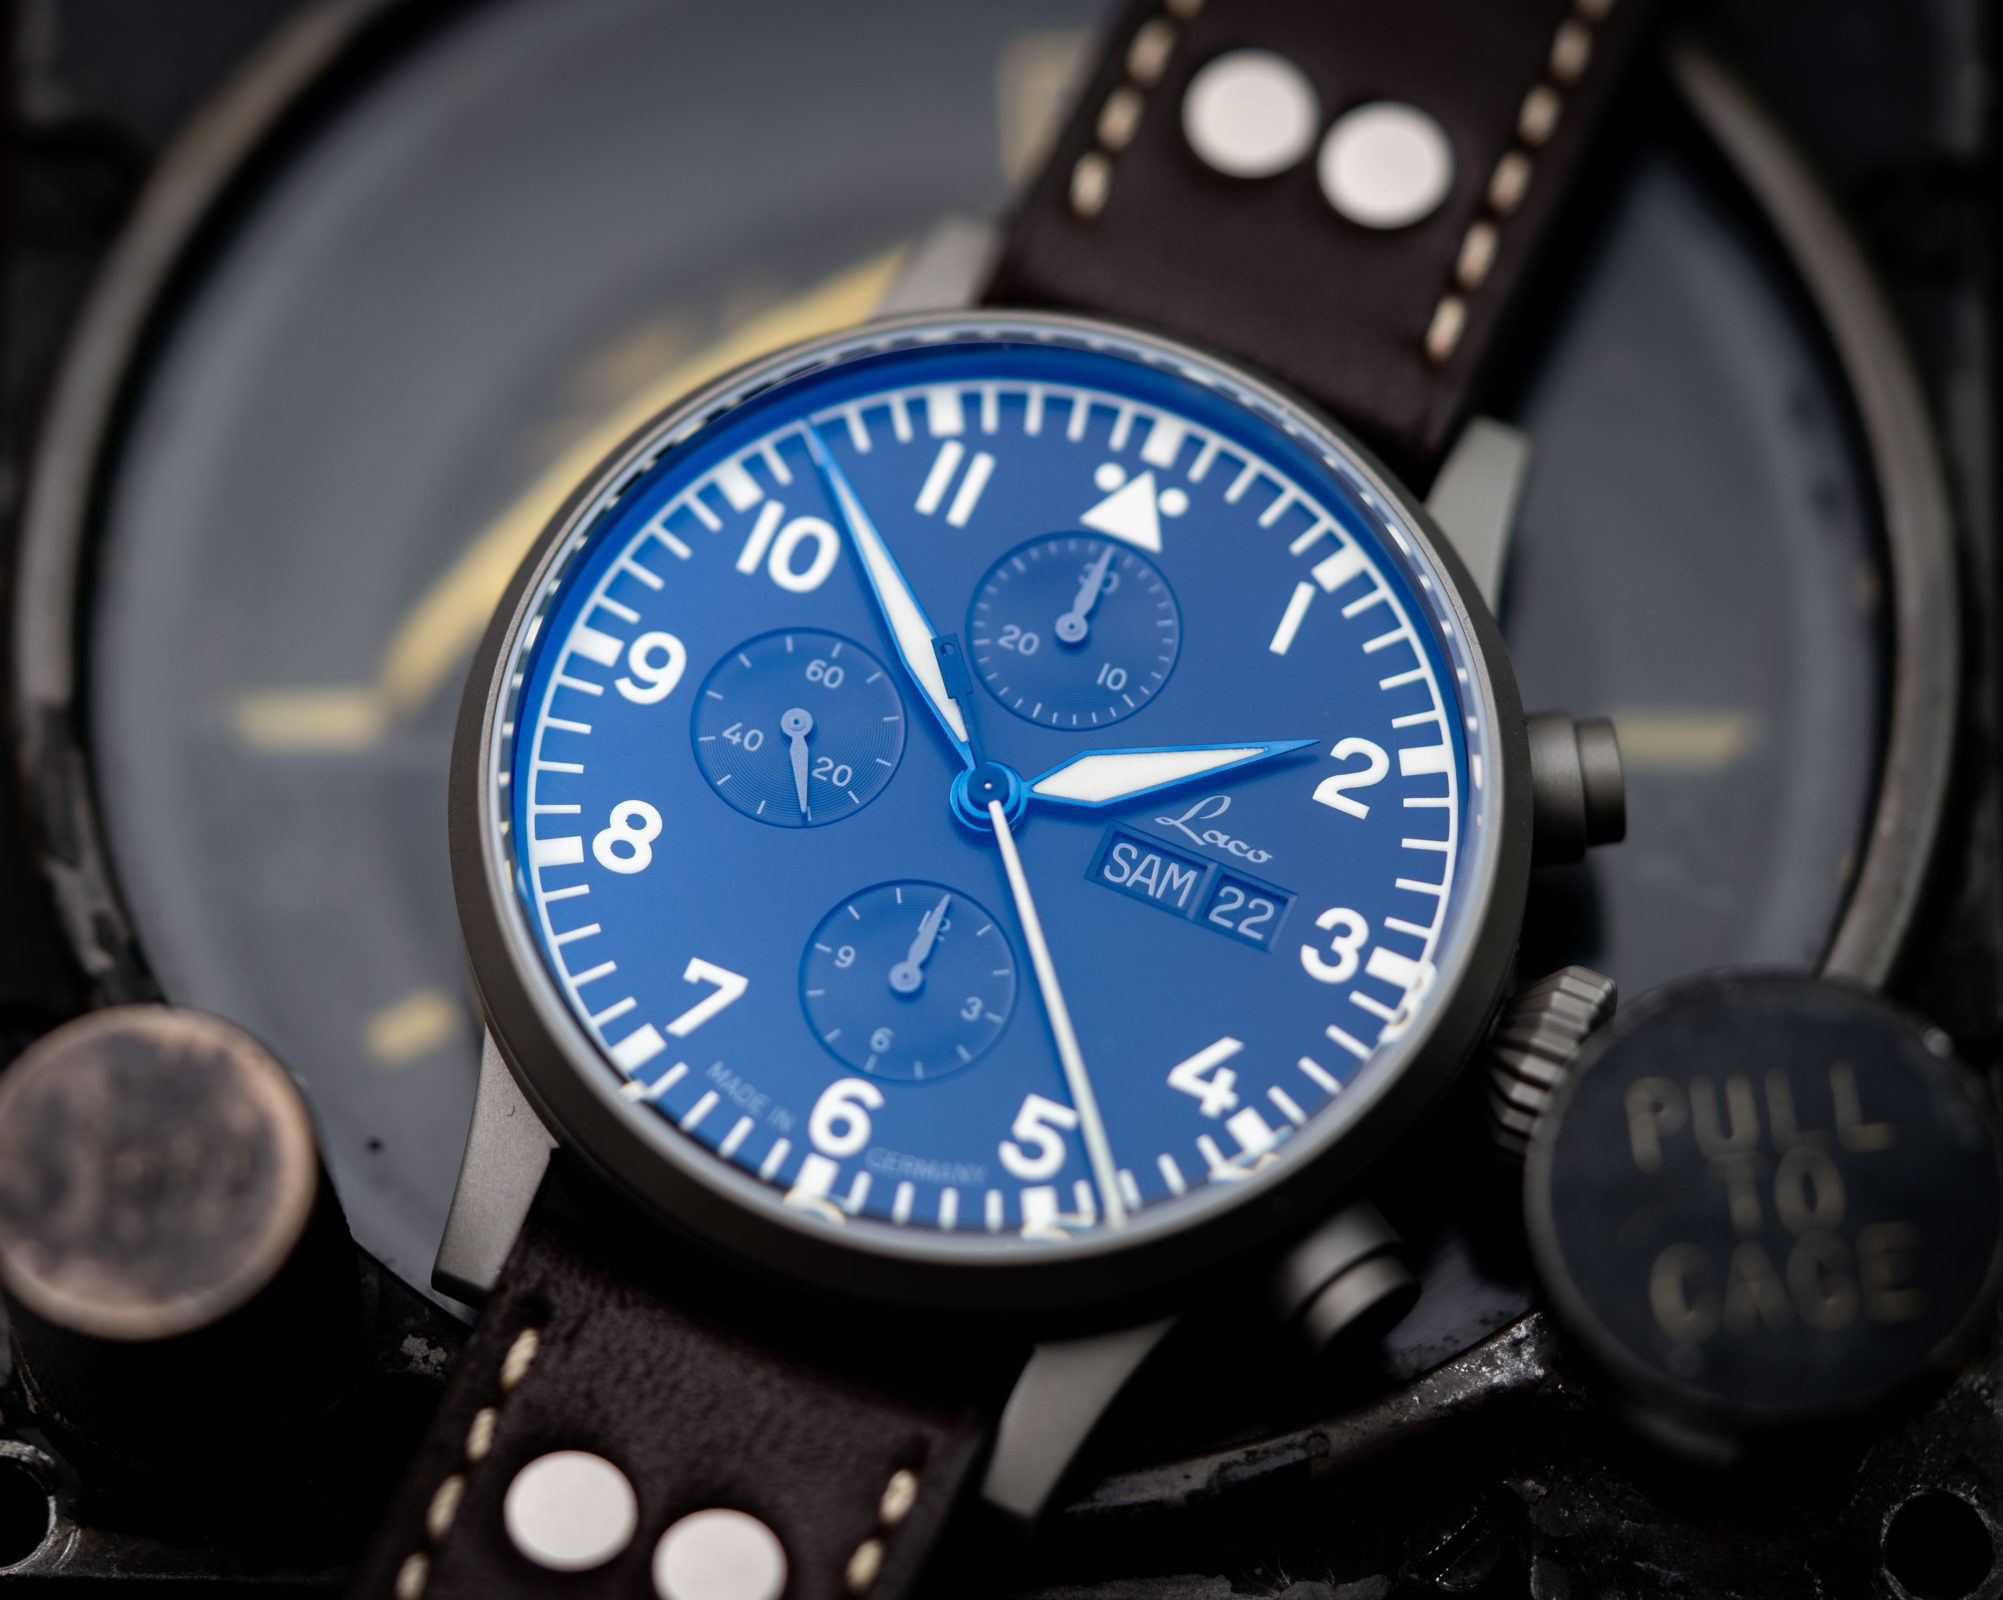 Read more about the article Laco München Chronograph: A-Muster im Ninja-Gewand